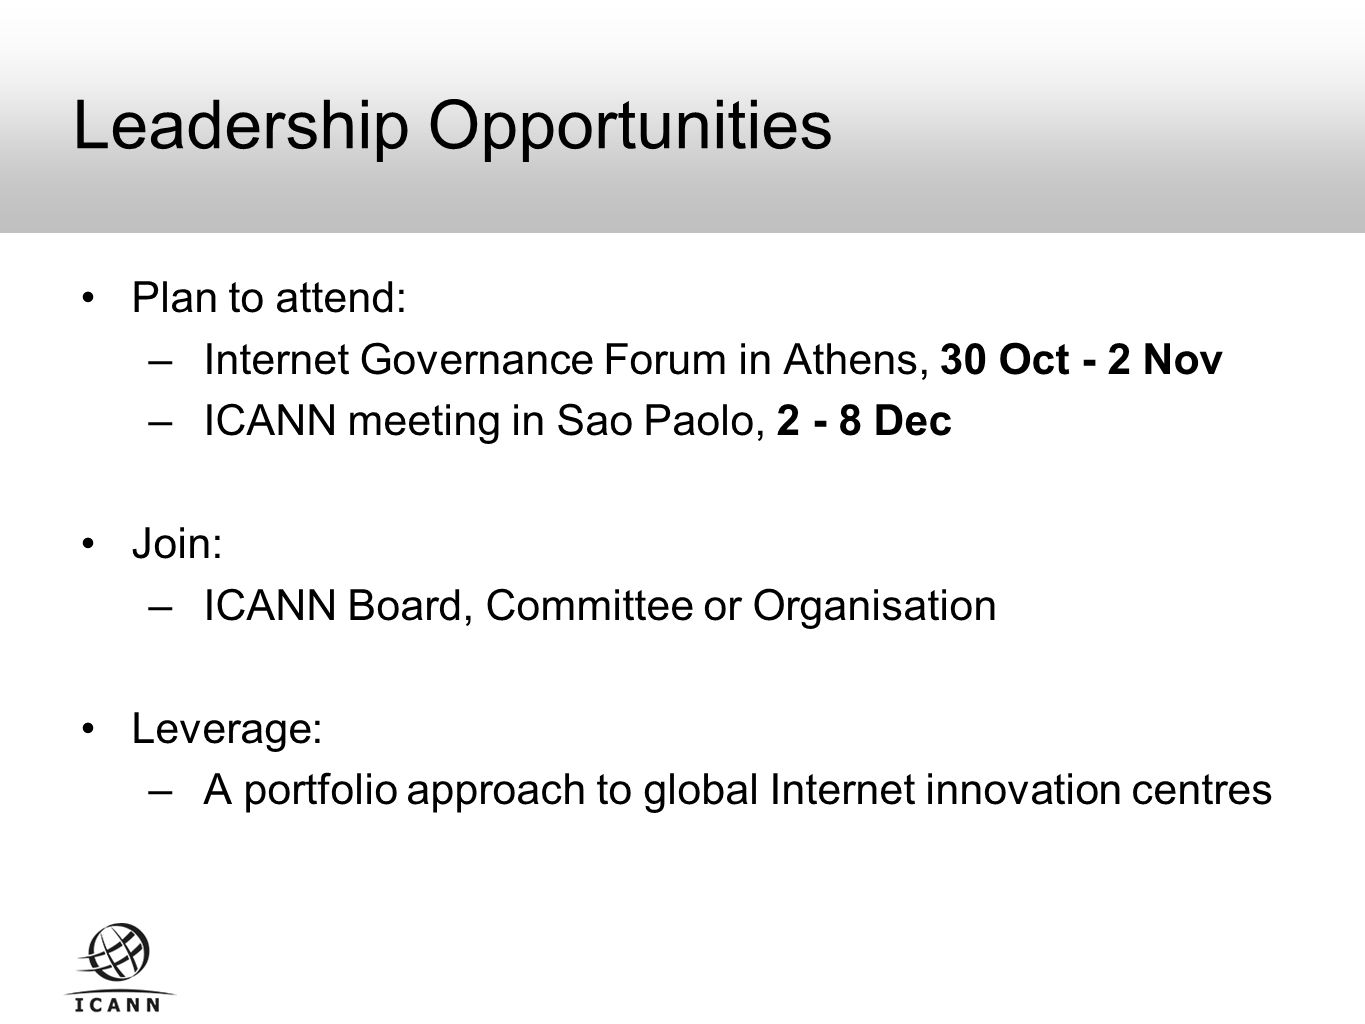 Plan to attend: – Internet Governance Forum in Athens, 30 Oct - 2 Nov – ICANN meeting in Sao Paolo, Dec Join: – ICANN Board, Committee or Organisation Leverage: – A portfolio approach to global Internet innovation centres Leadership Opportunities